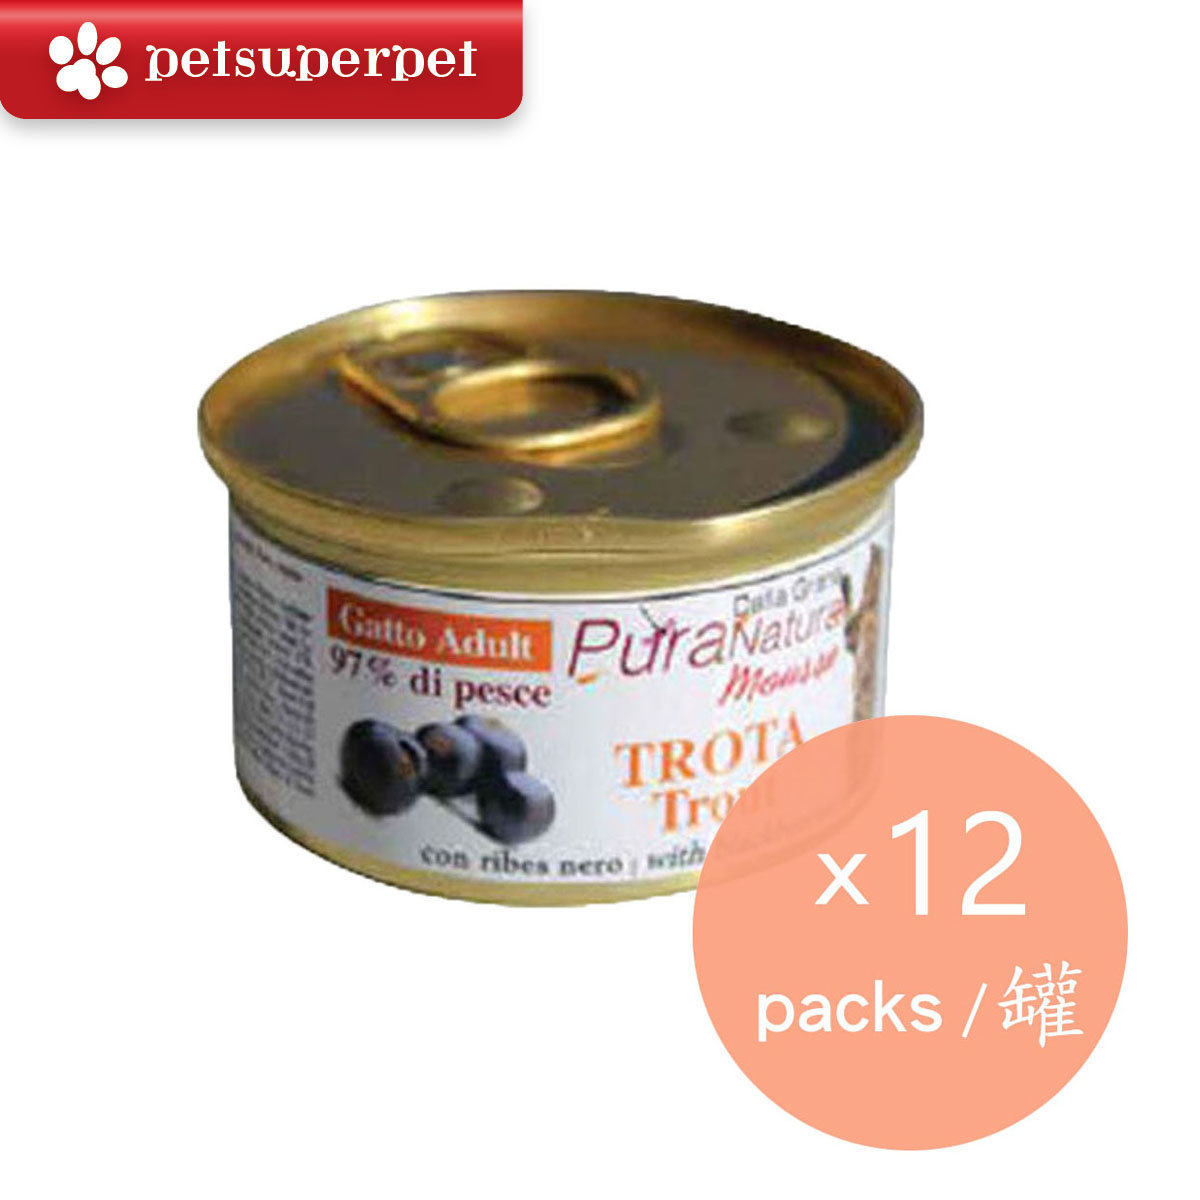 【Expiry date:19/01/2021】Trout with Blackcurrant for Adult Cat - 85g x12